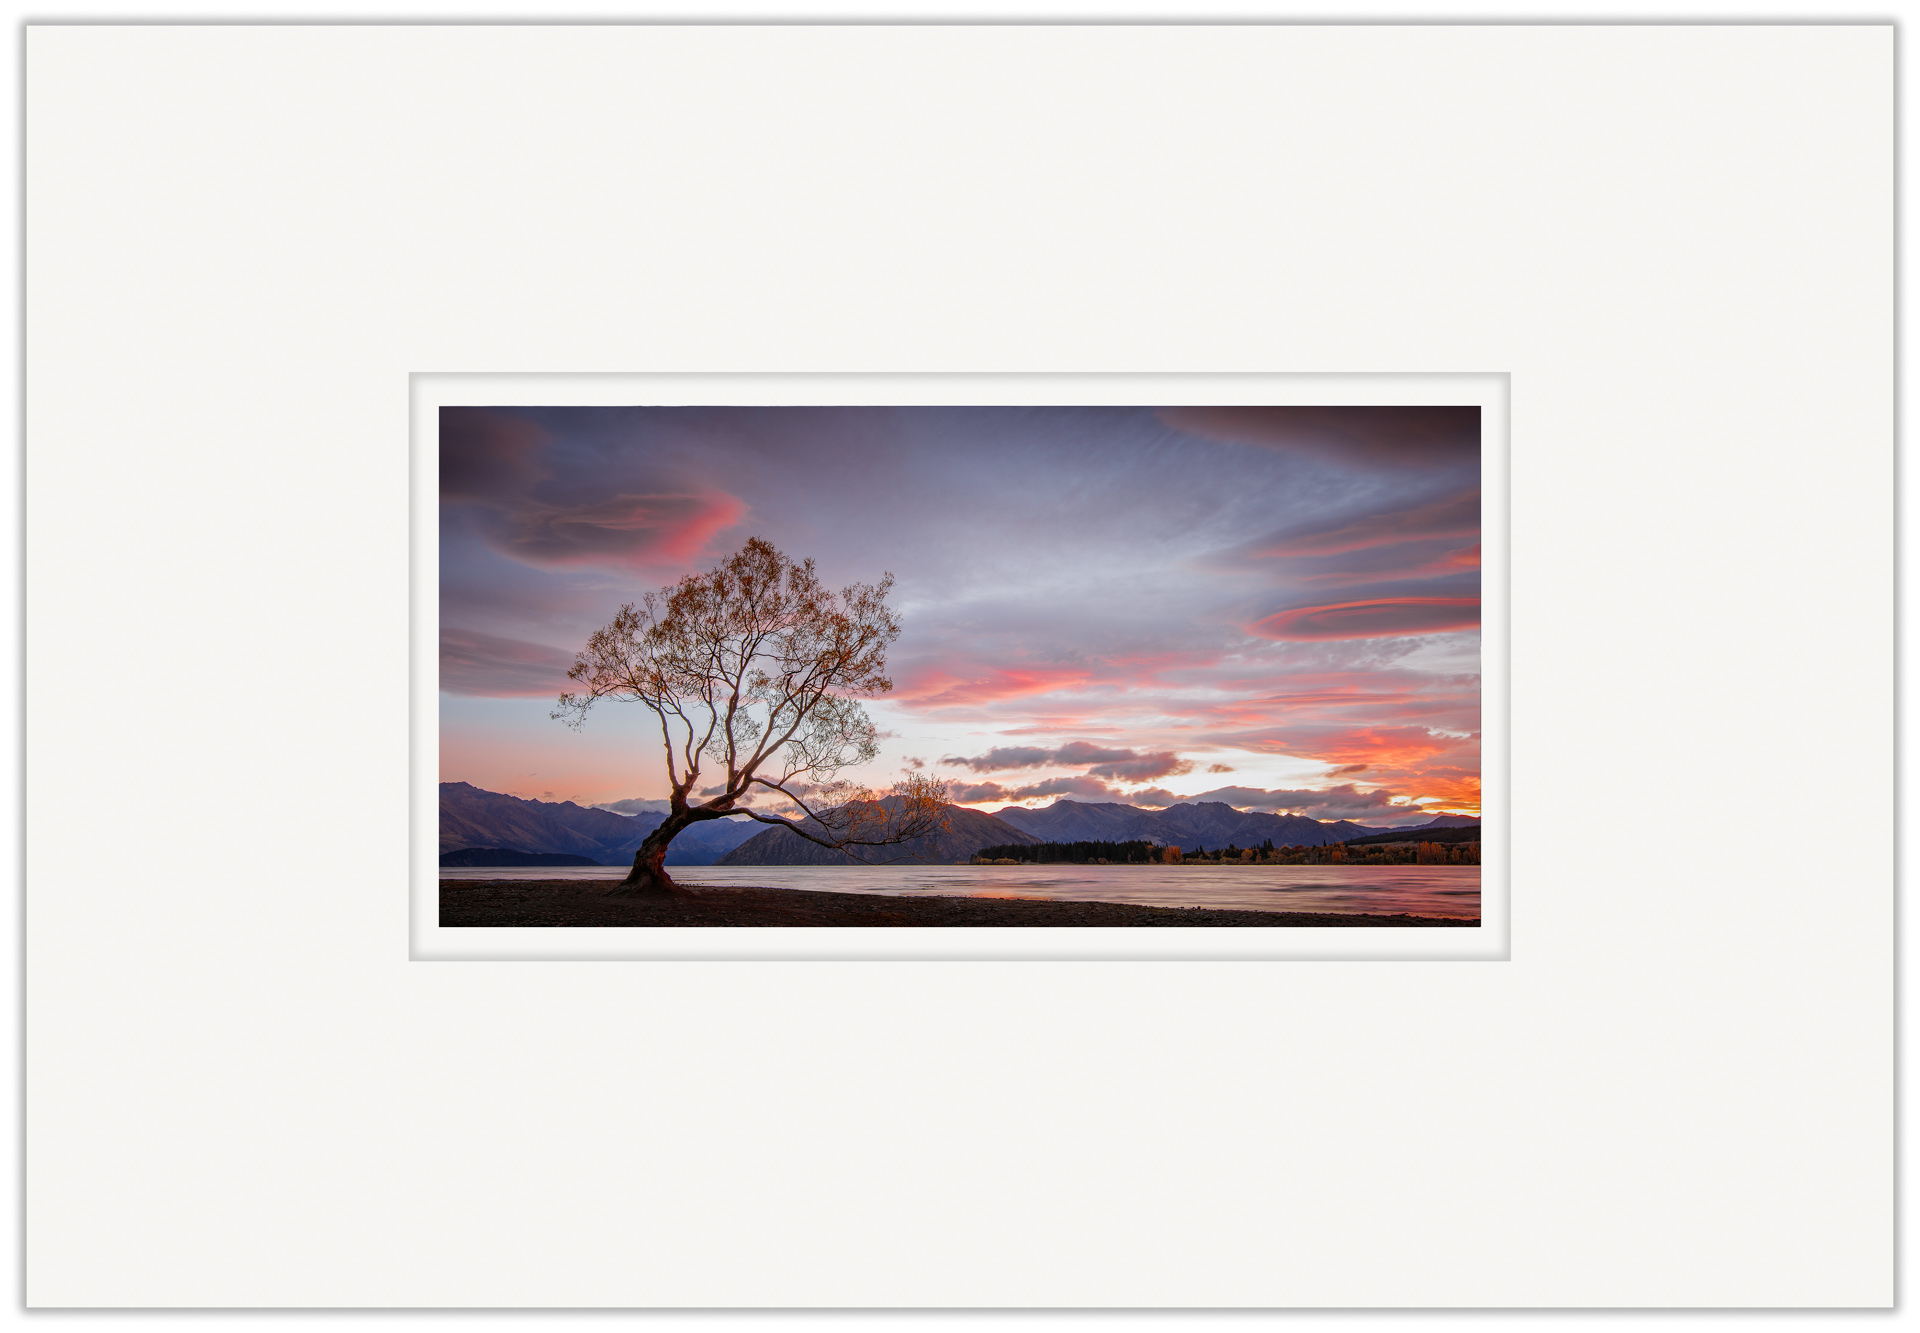 The Wanaka Tree   20cm x 40cm Photo Paper Limited Edition of 99   IDR 1,399,000